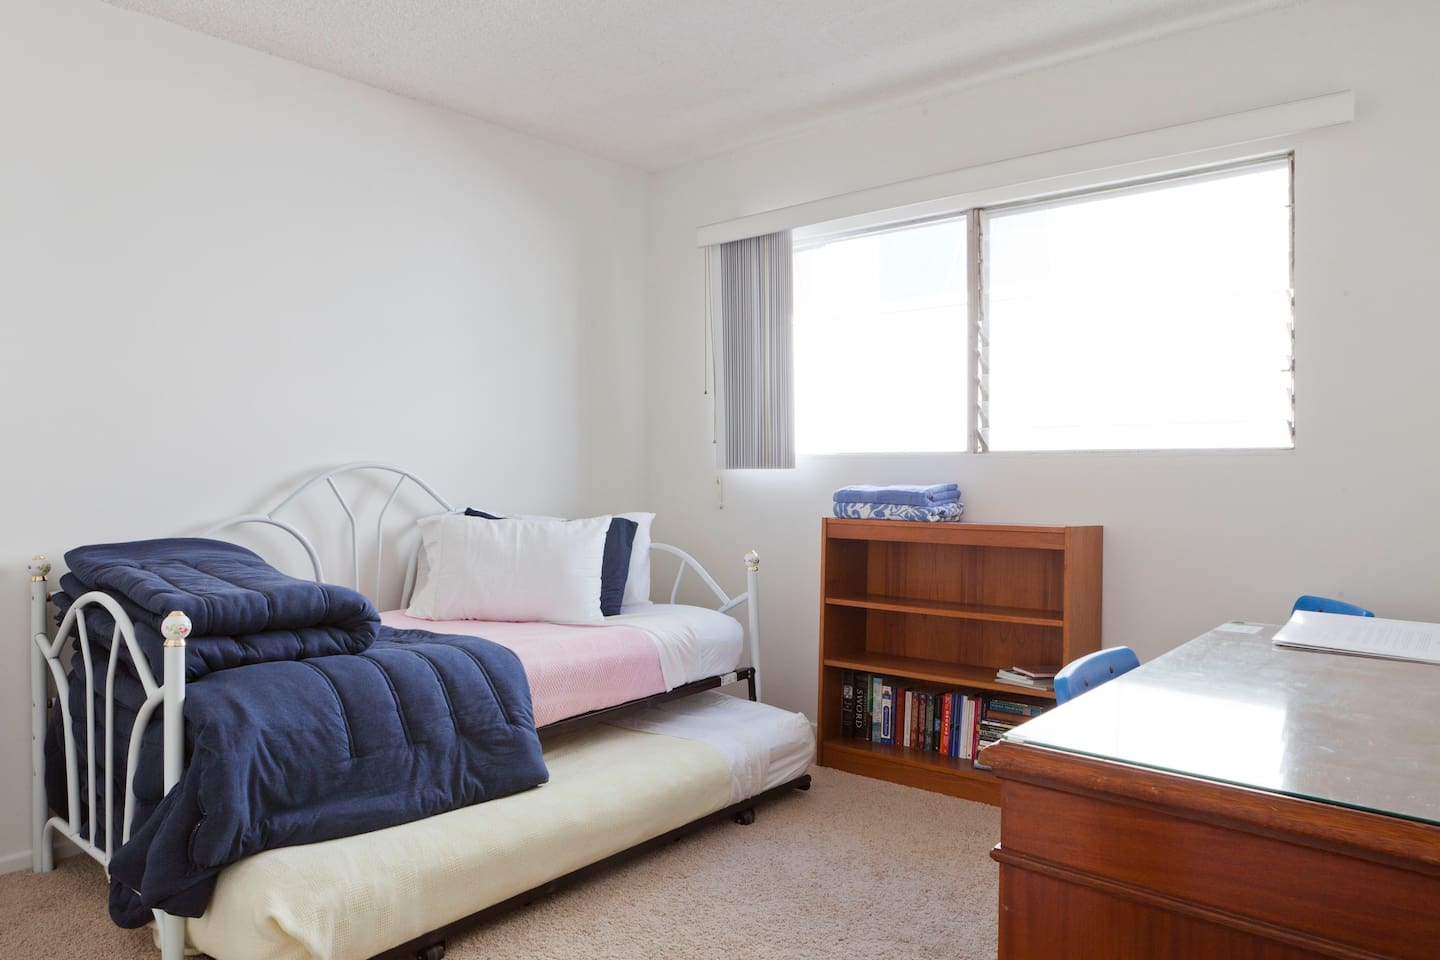 Two single trundle beds in a private room, shelf space for belongings